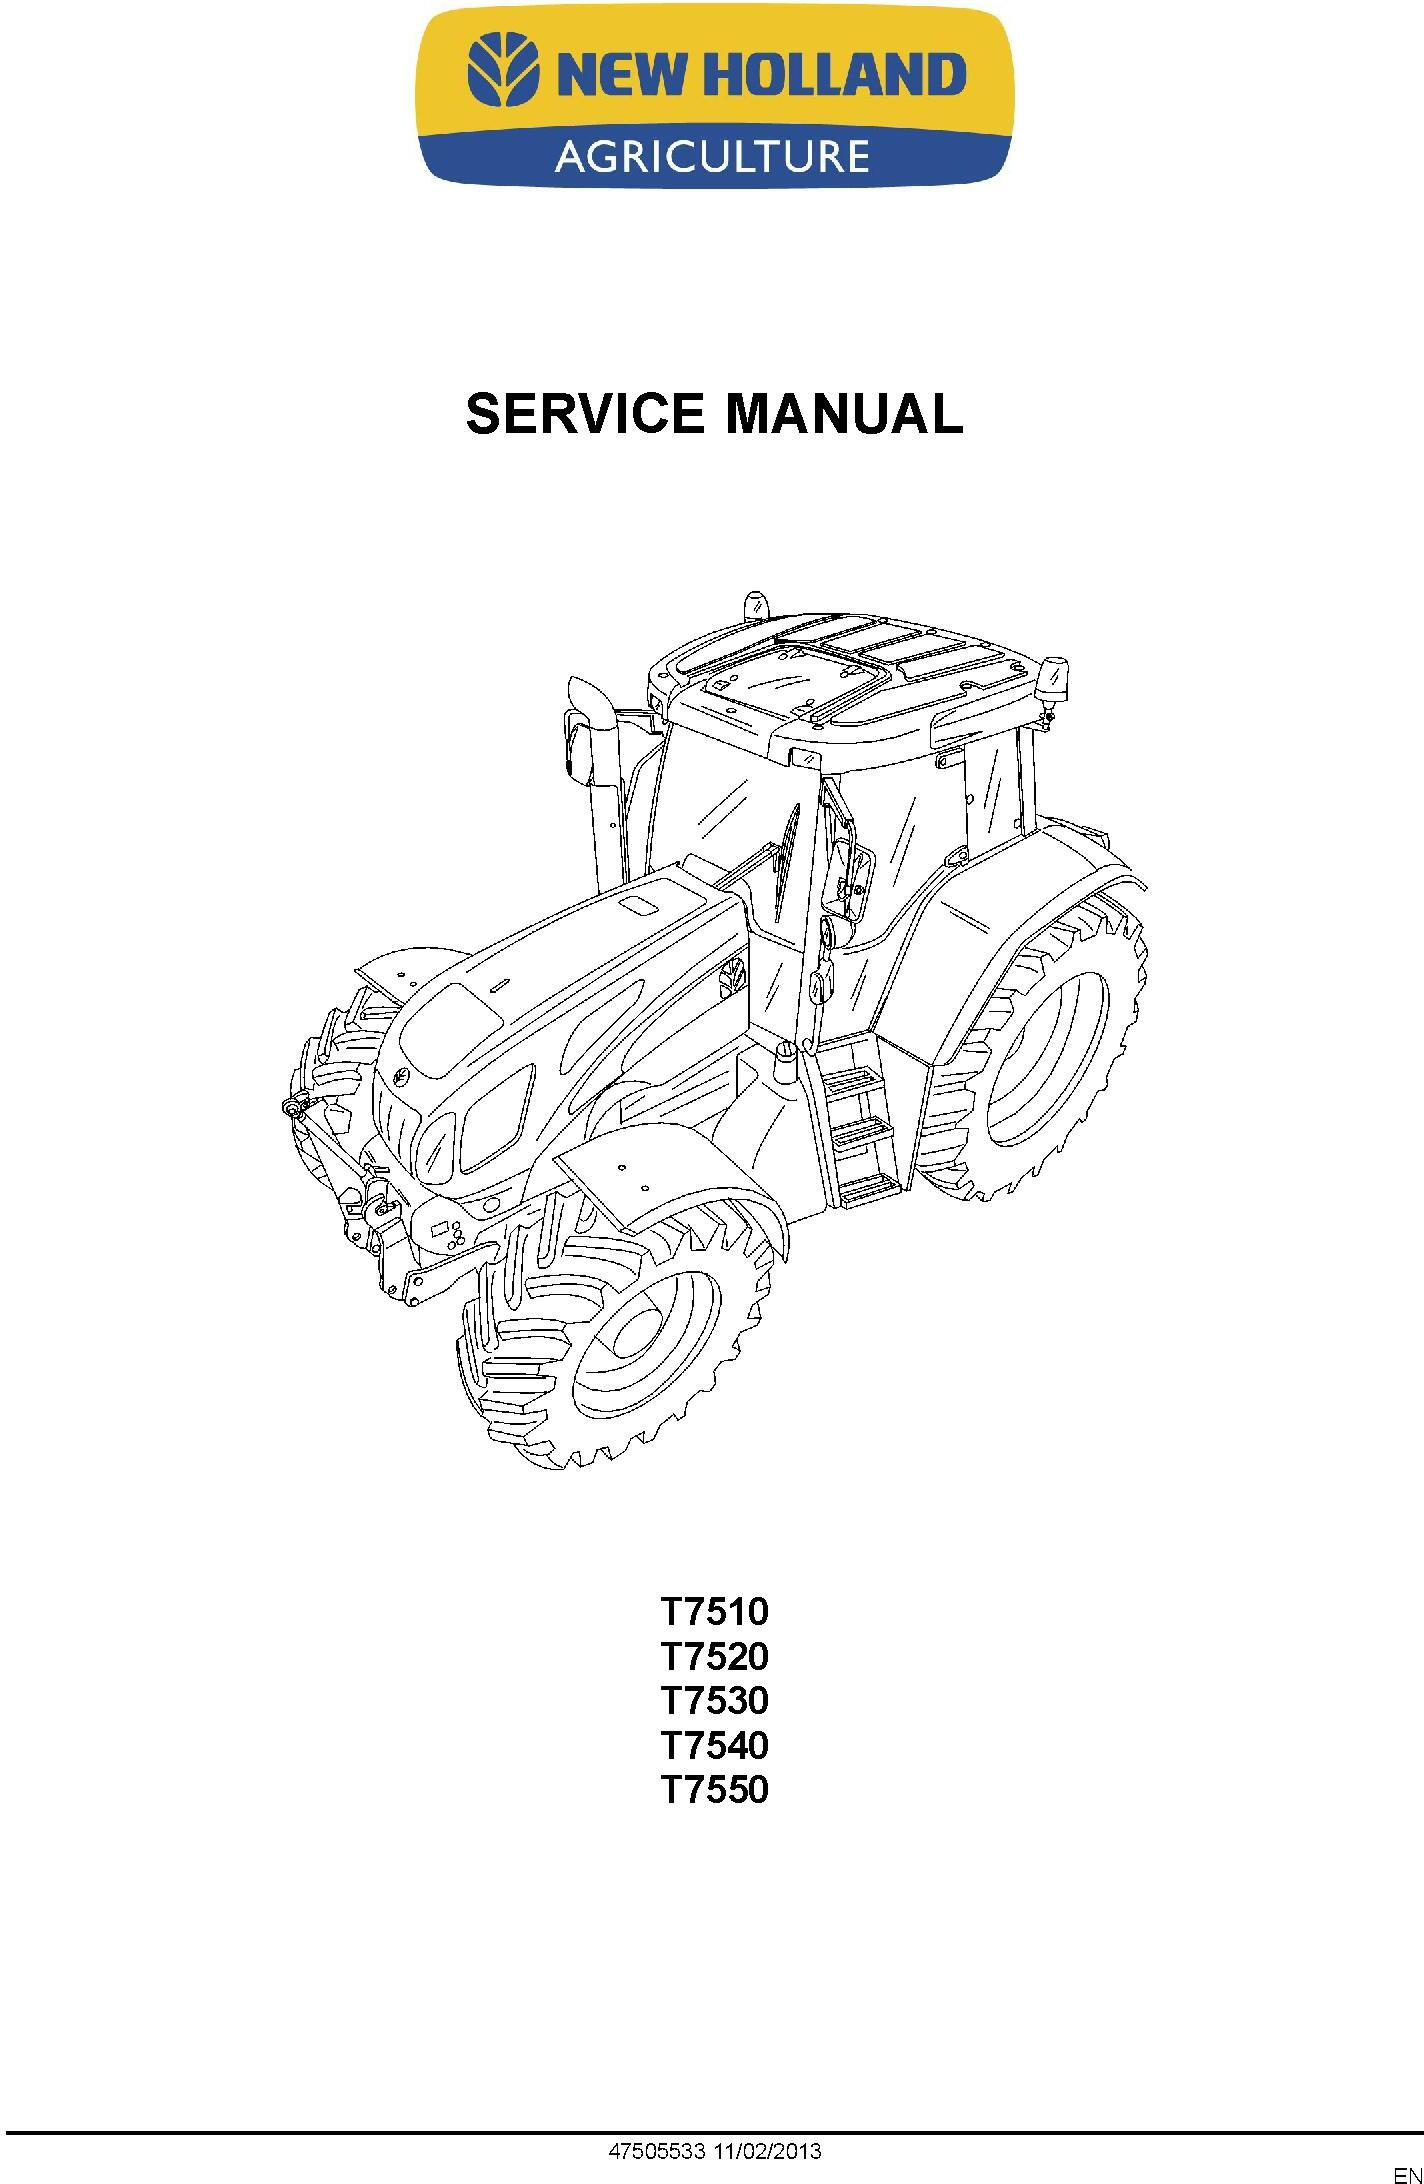 New Holland T7510, T7520, T7530, T7540, T7550 Tractor Service Manual - 1